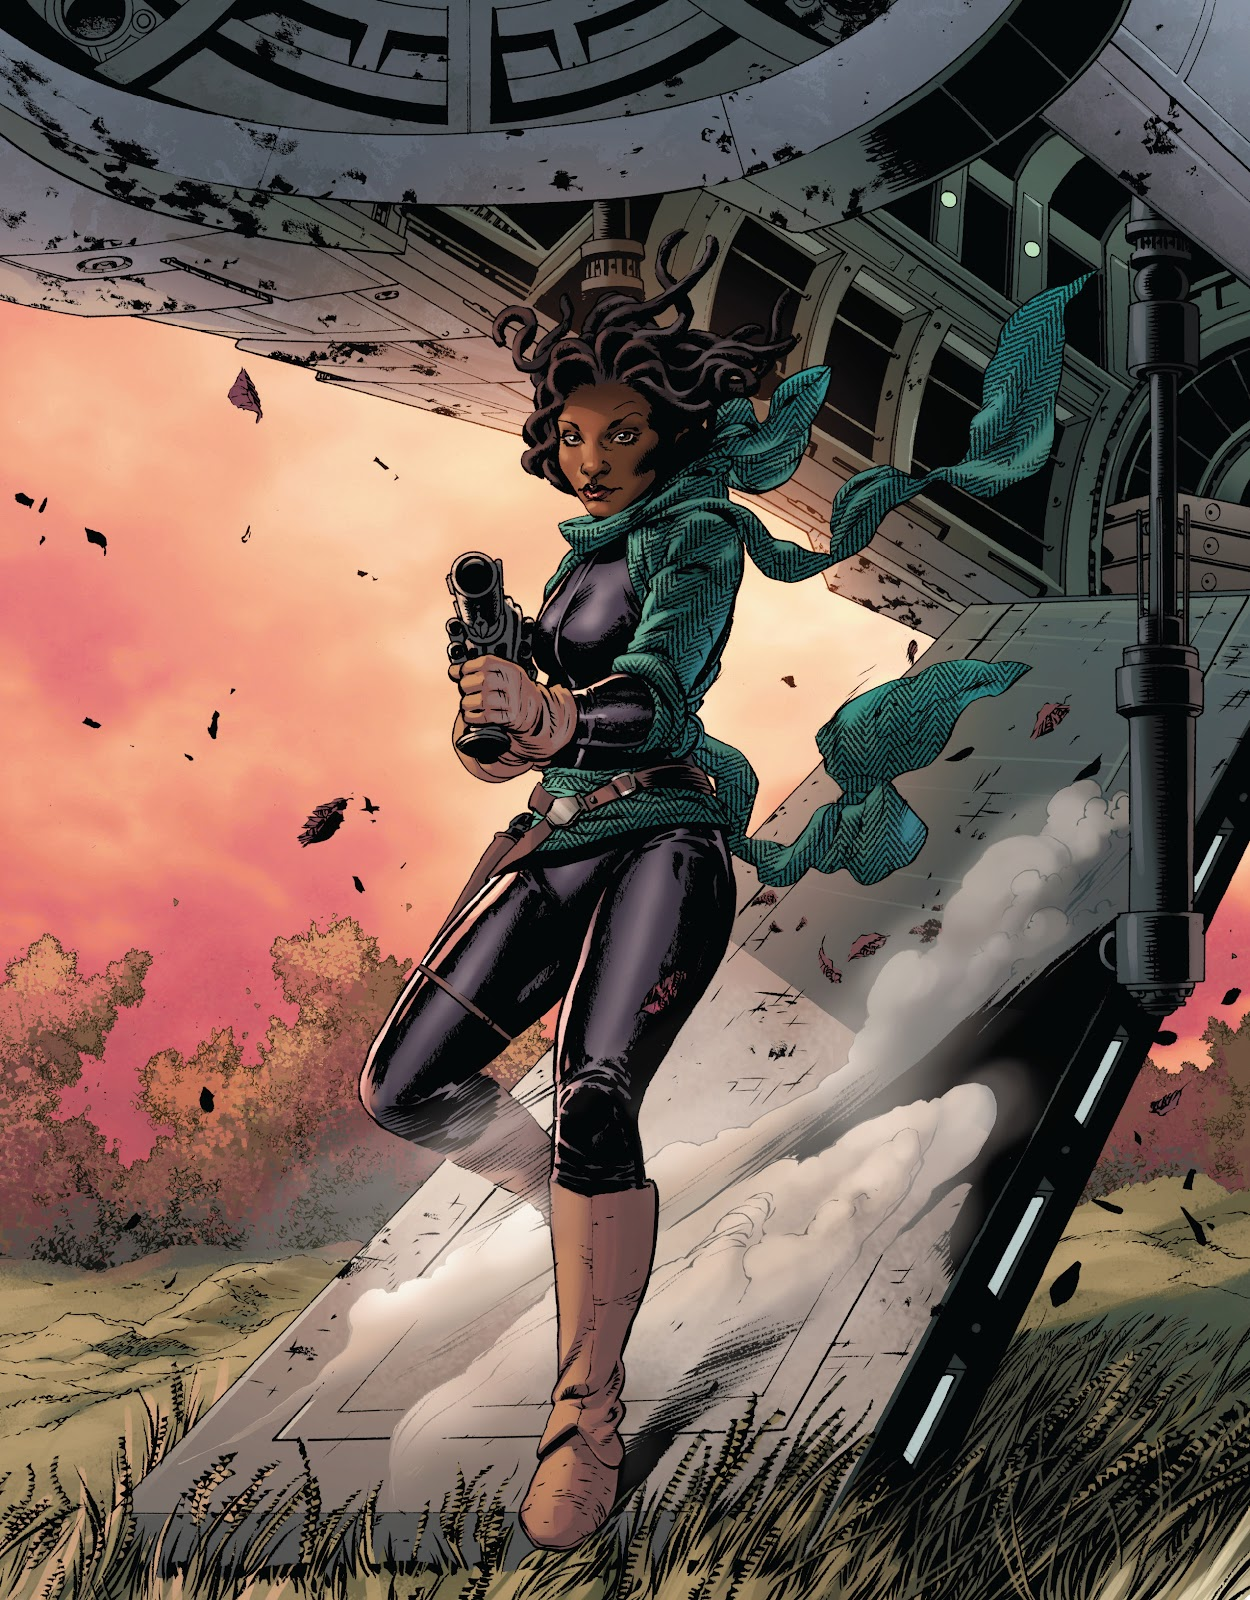 Read online The Marvel Art of Star Wars comic -  Issue # TPB (Part 1) - 30